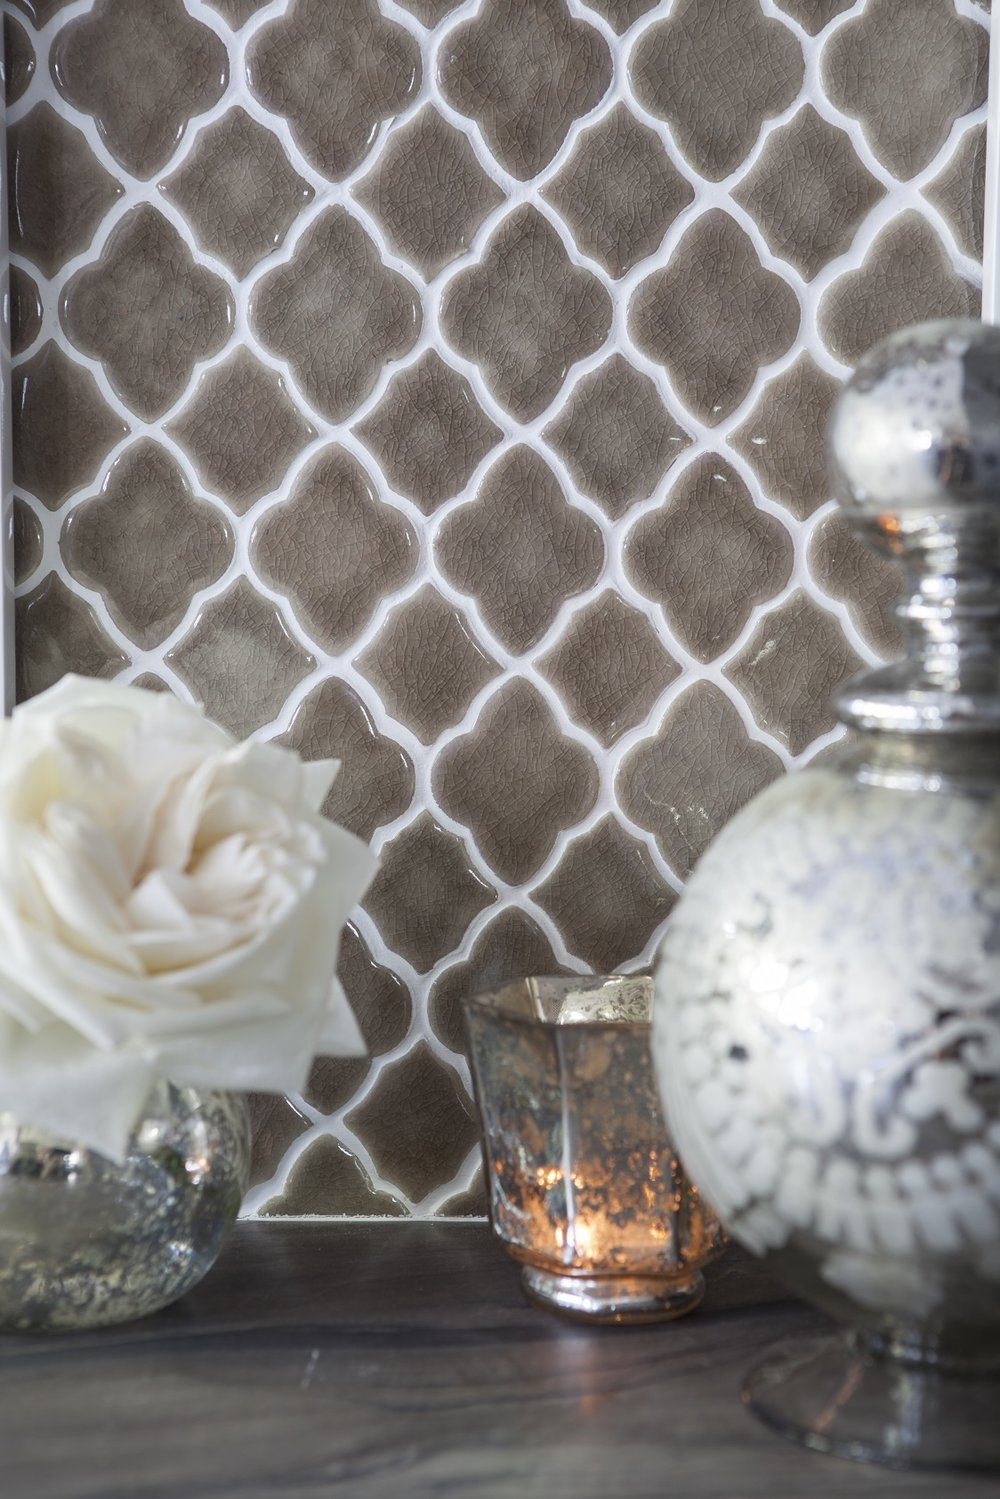 Vibe Moroccan Mosaic in Suede.jpg